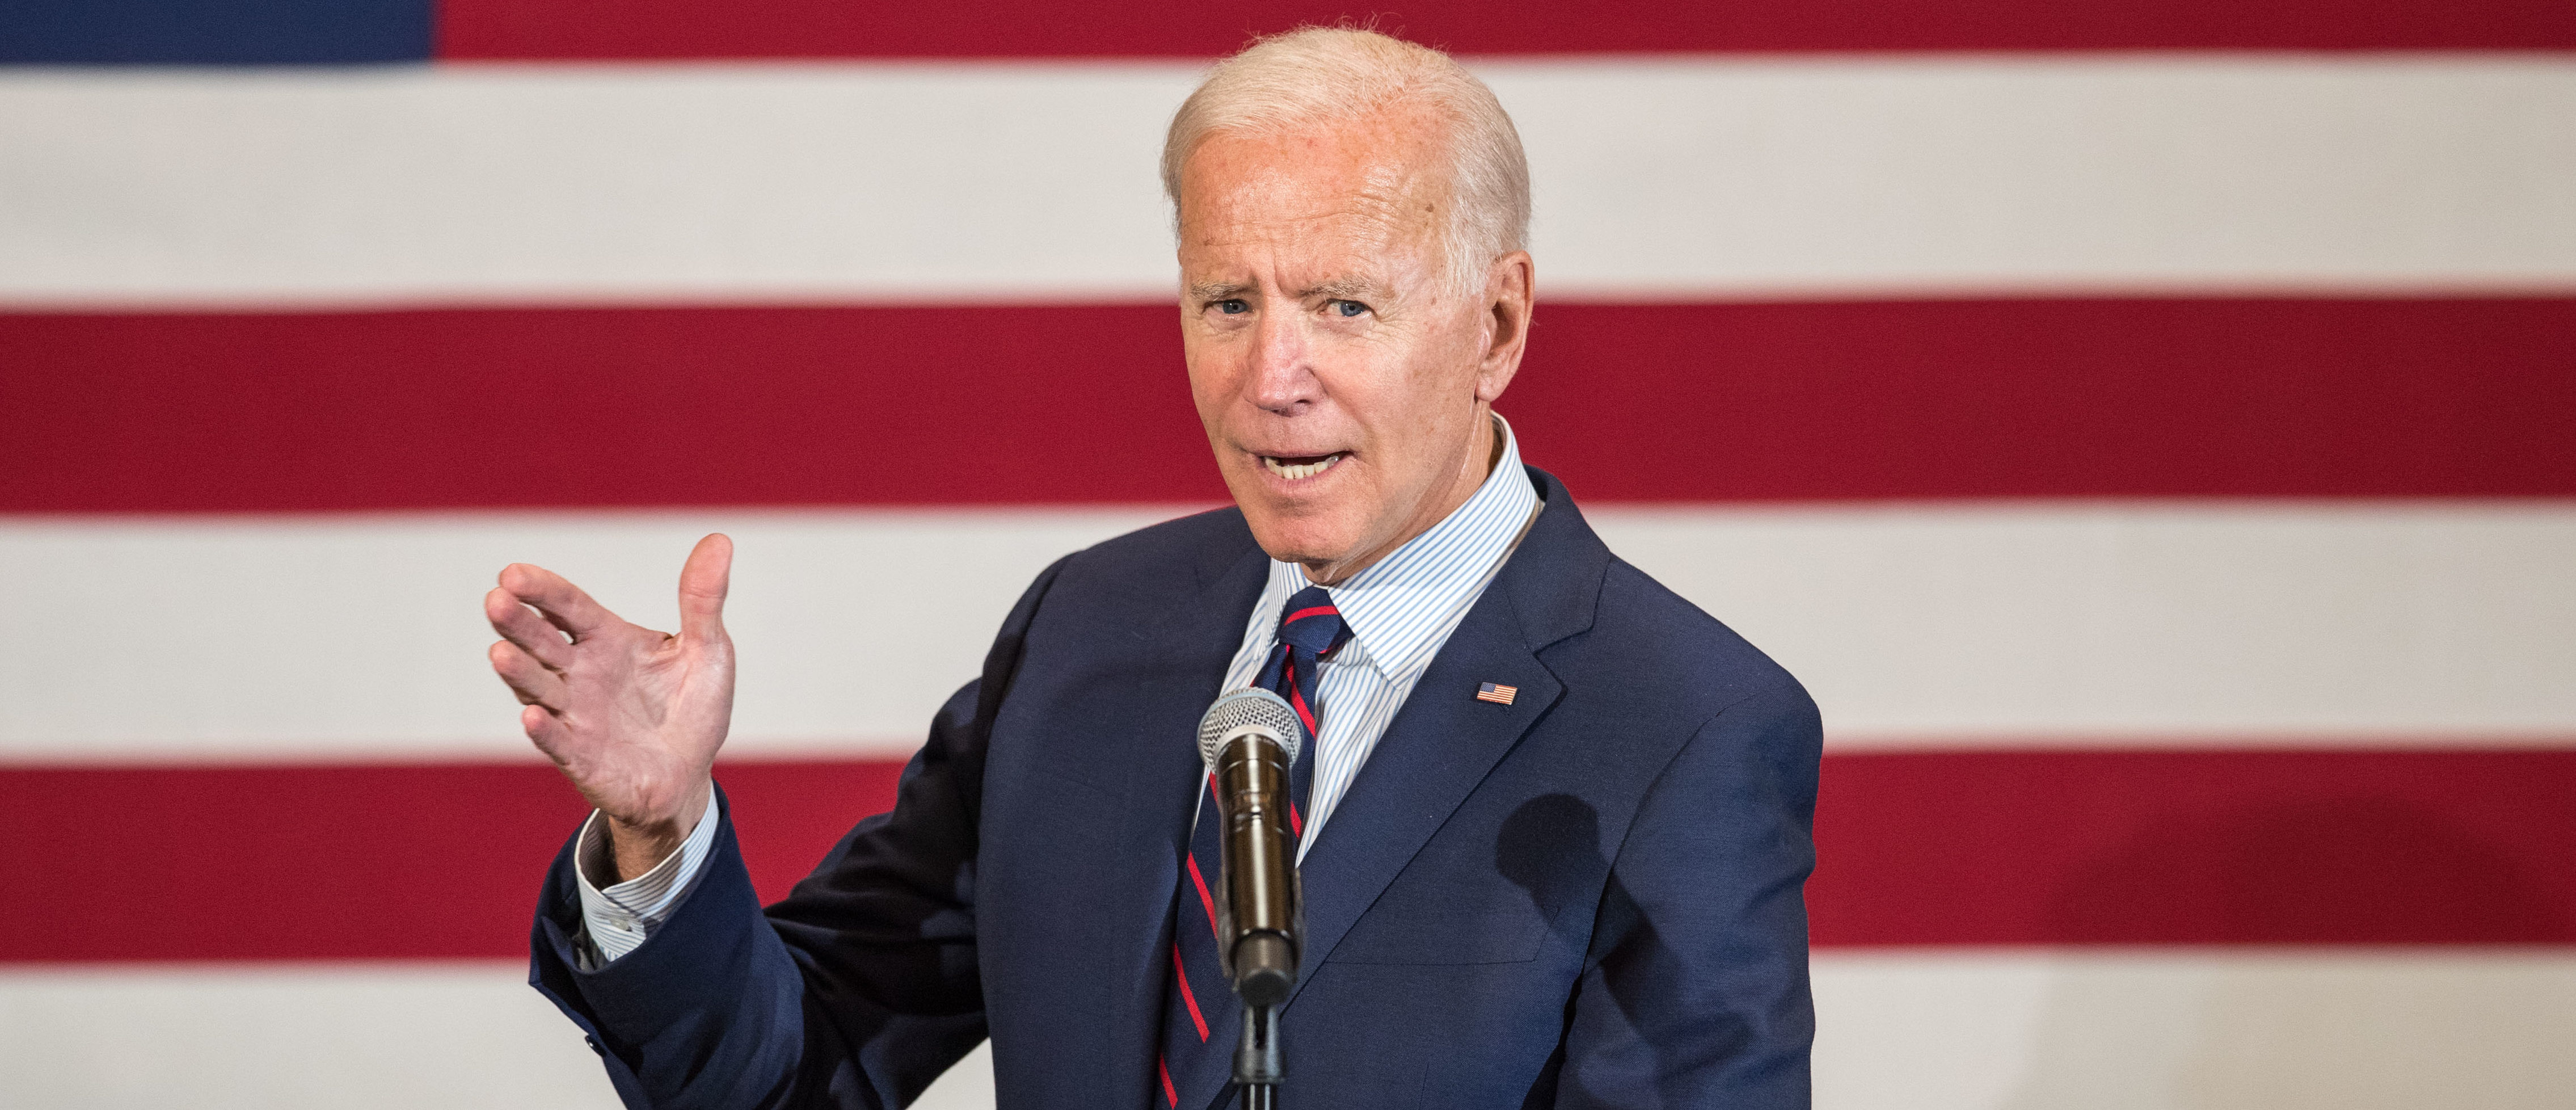 Democratic presidential candidate, former Vice President Joe Biden speaks during a campaign event on October 9, 2019 in Manchester, New Hampshire. (Scott Eisen/Getty Images)